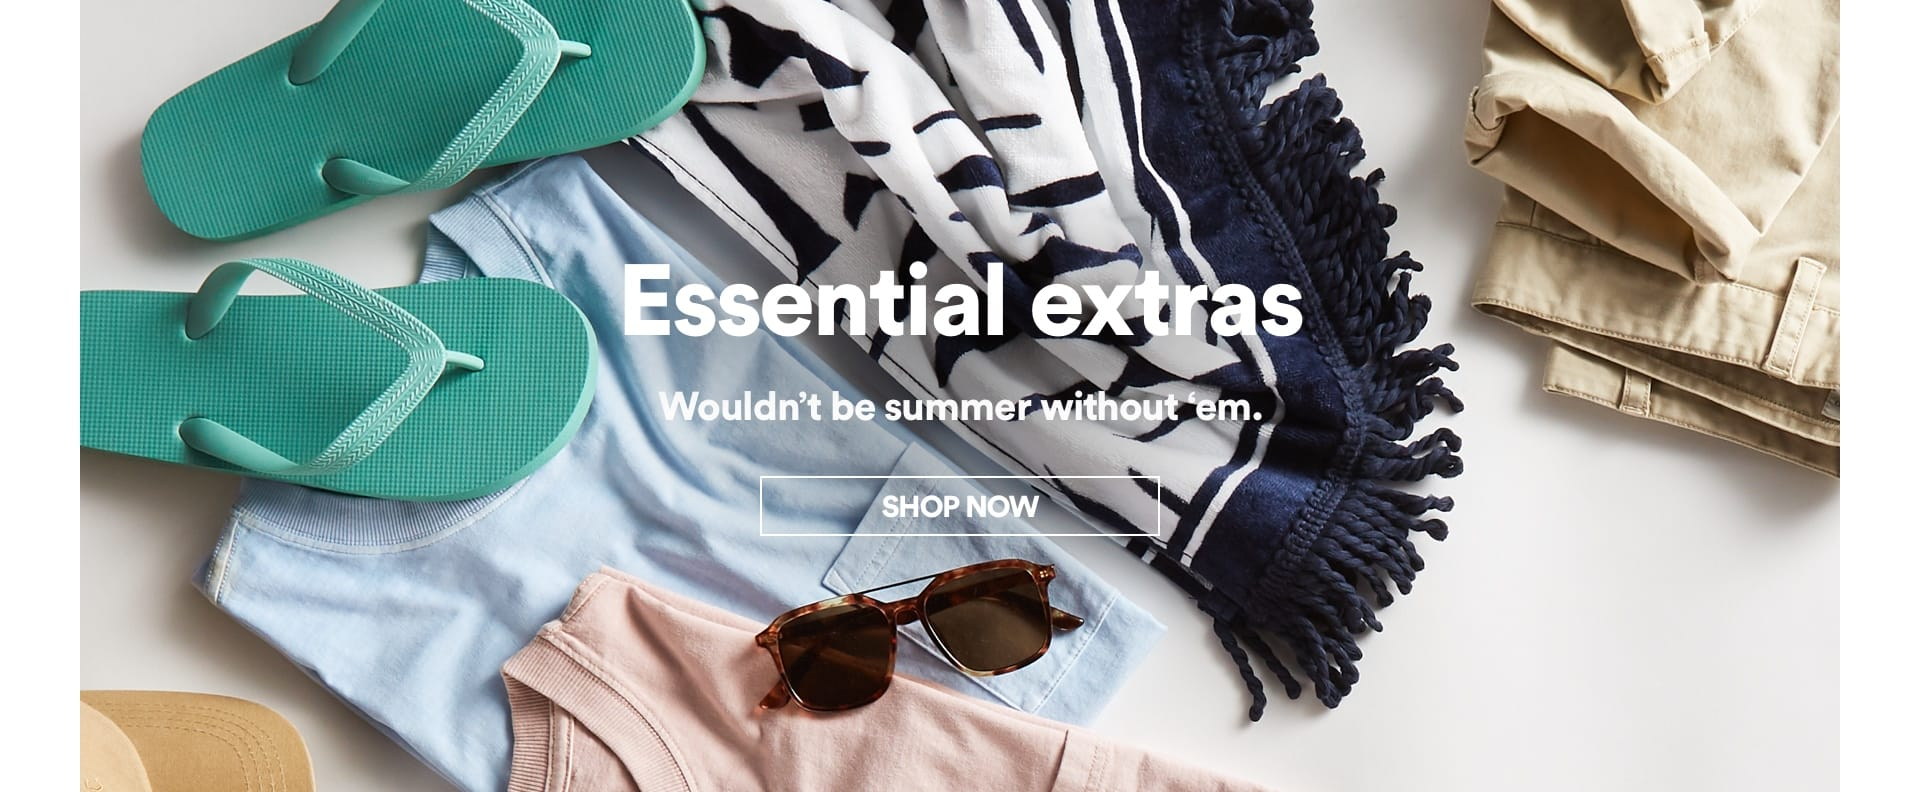 Essential extras | Wouldn't be summer without 'em. Click to Shop Now.